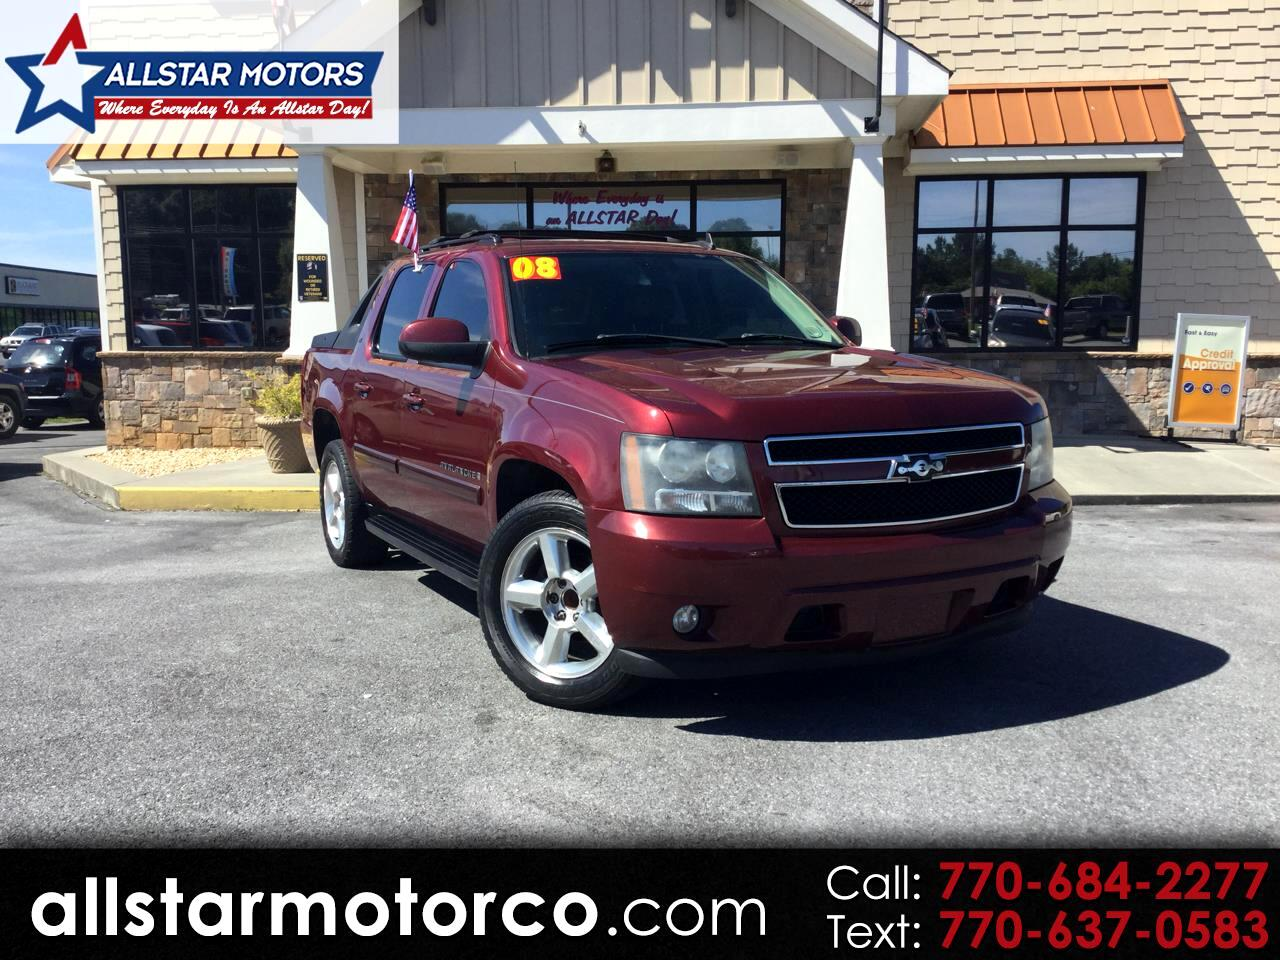 2008 Chevrolet Avalanche 2WD Crew Cab 130